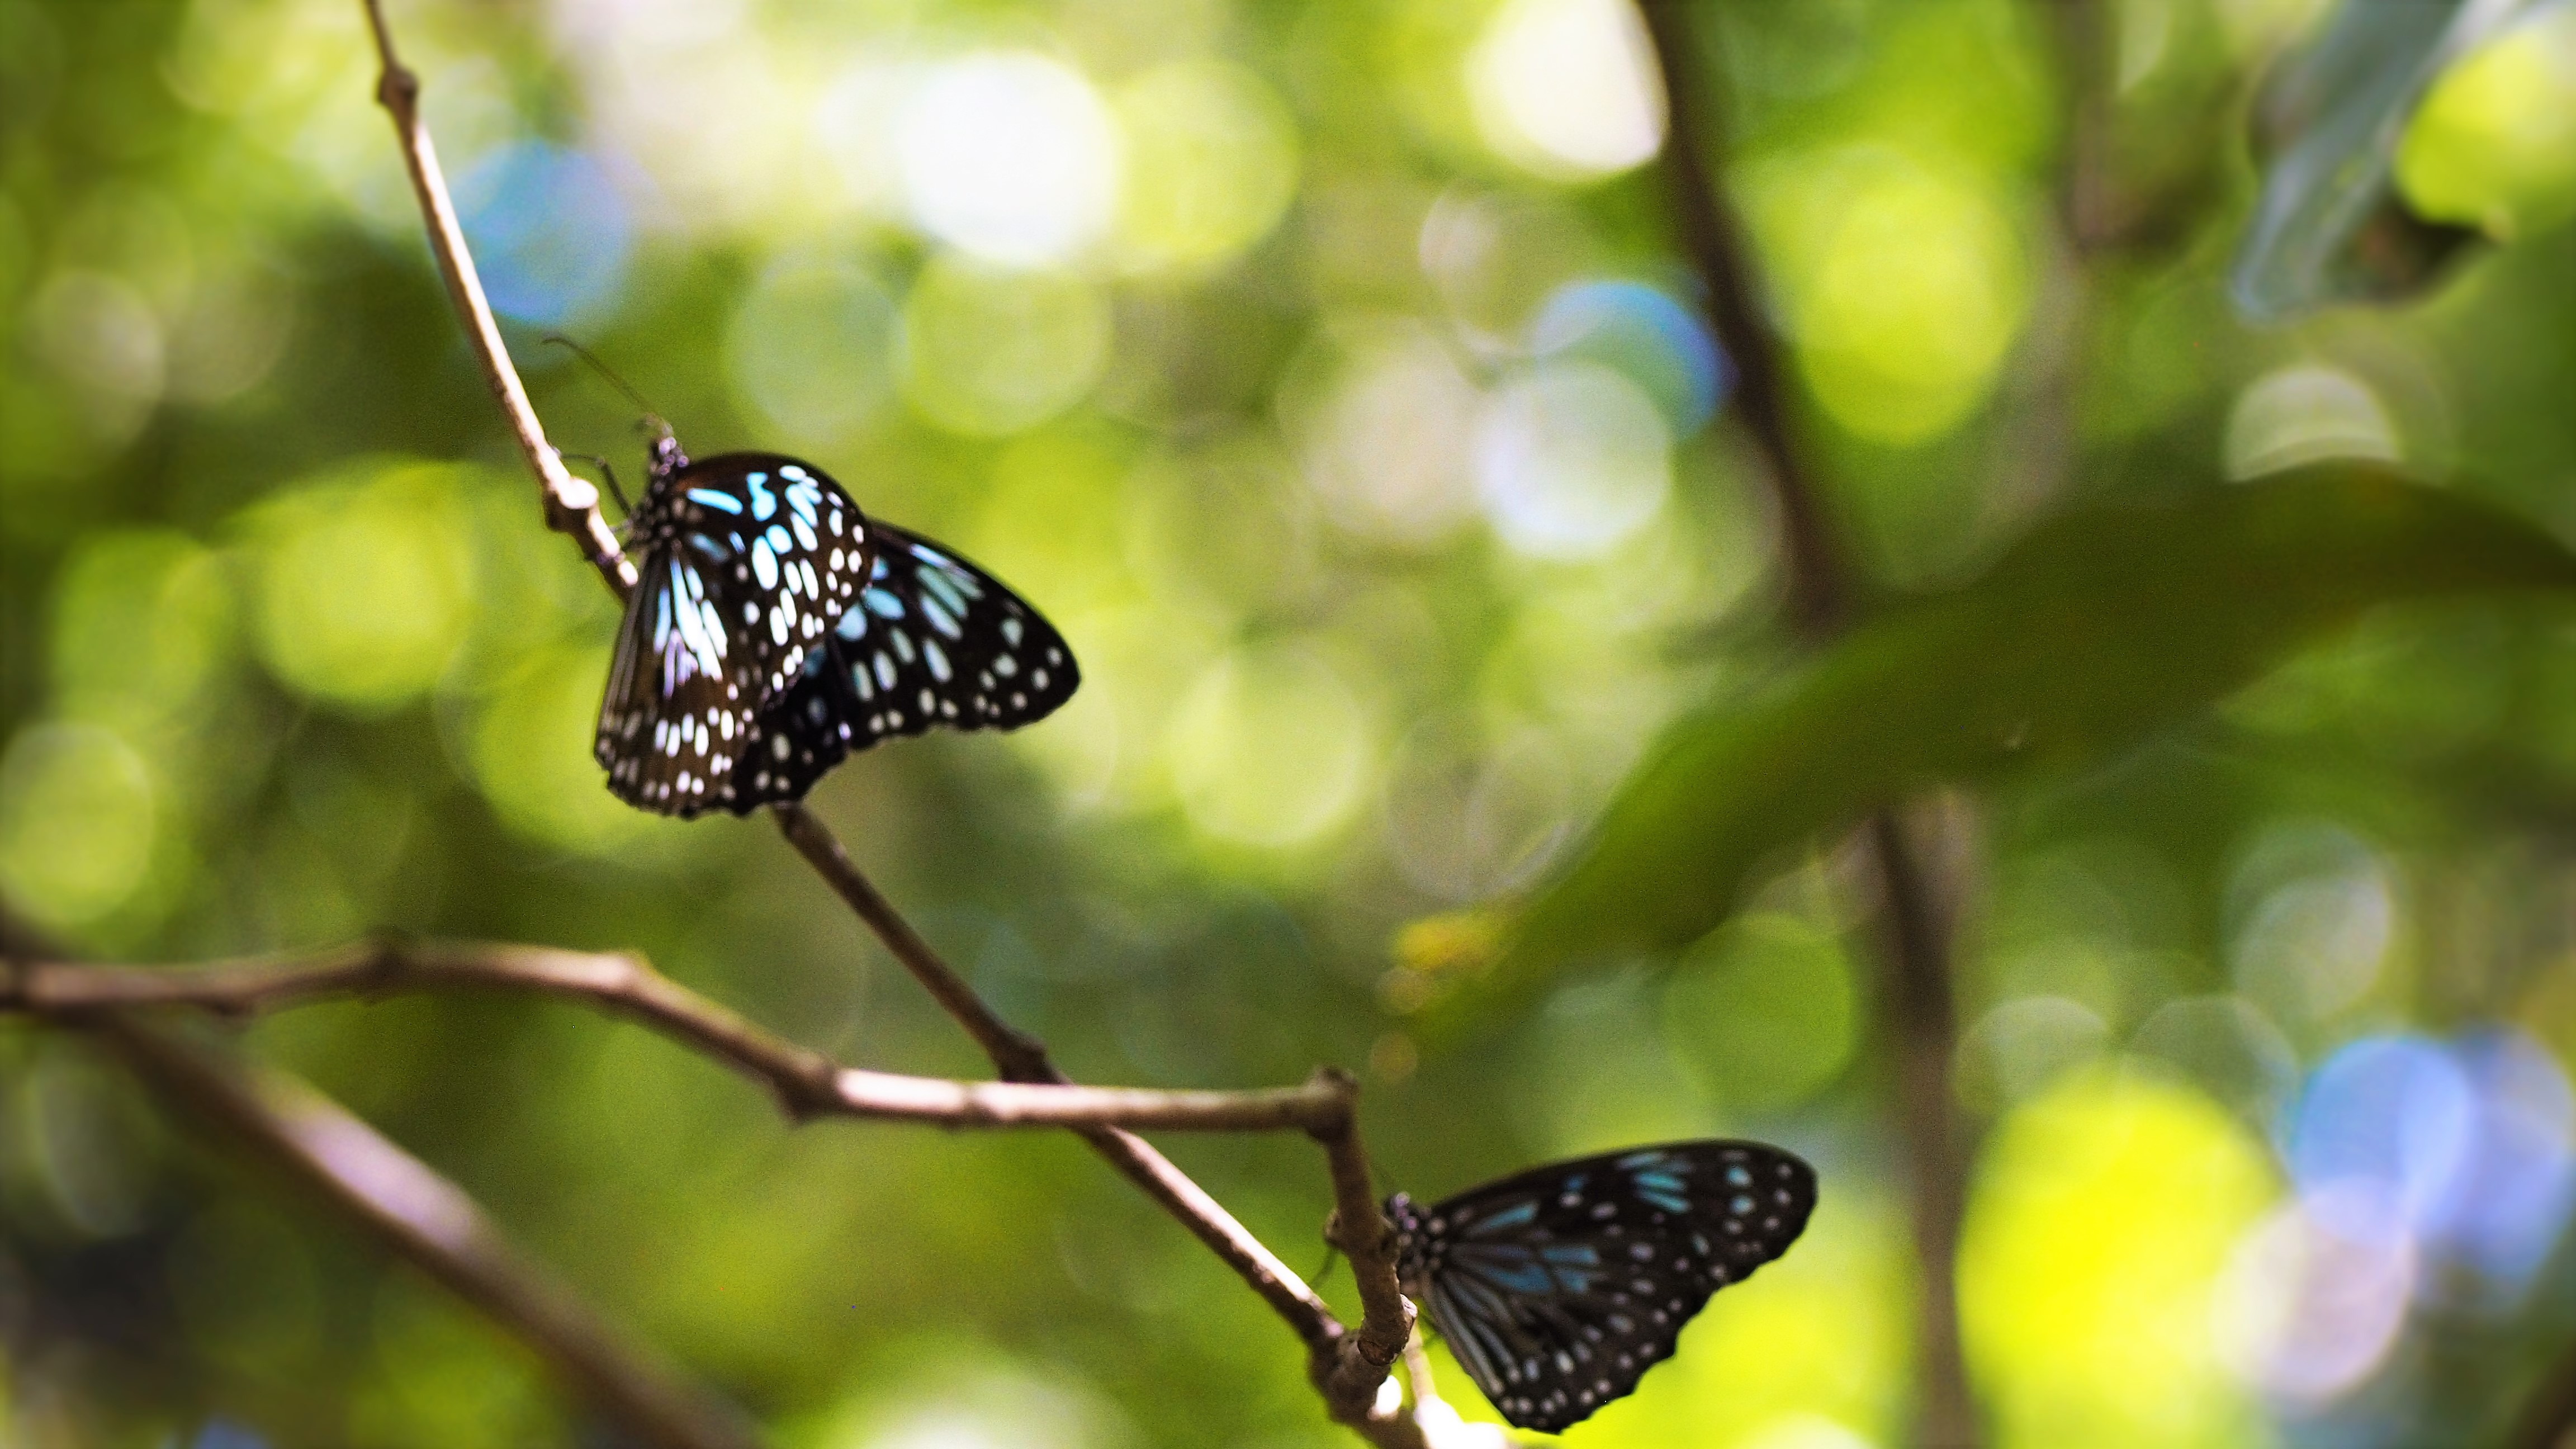 Blue_Tiger_Butterfly_Magnetic_Island_2